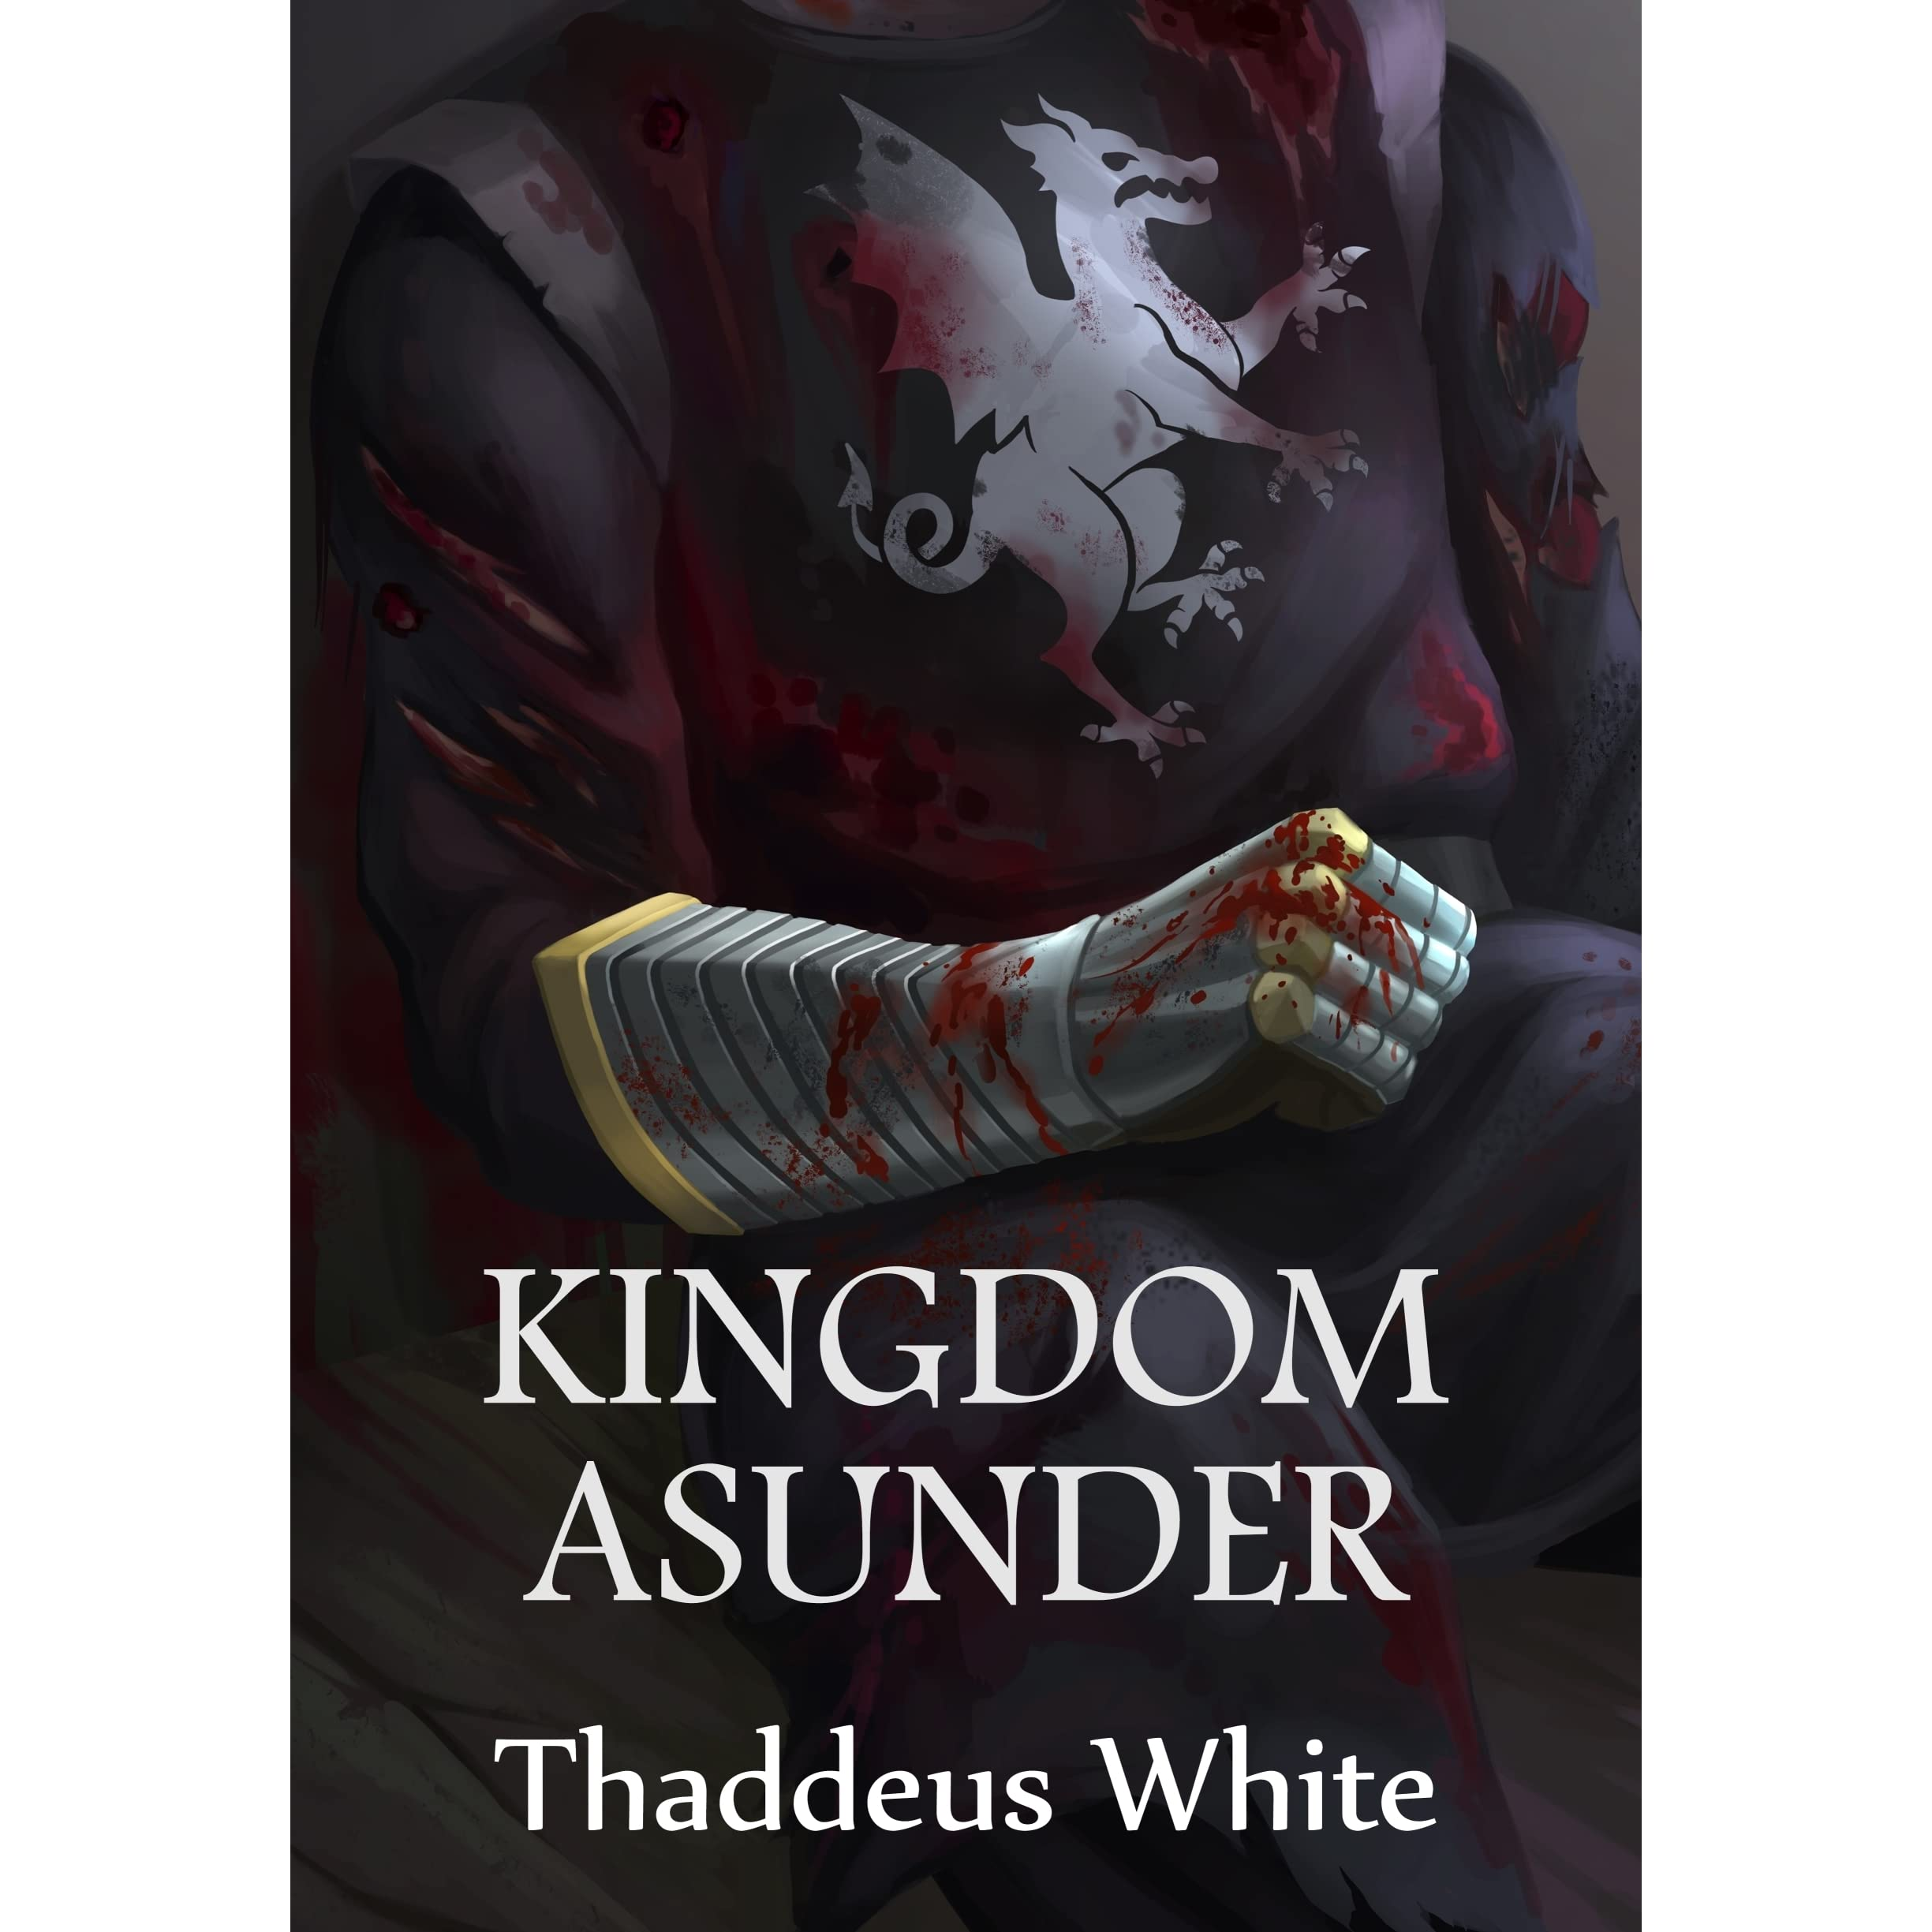 Kingdom Manga Goodreads: Kingdom Asunder (The Bloody Crown Trilogy #1) By Thaddeus